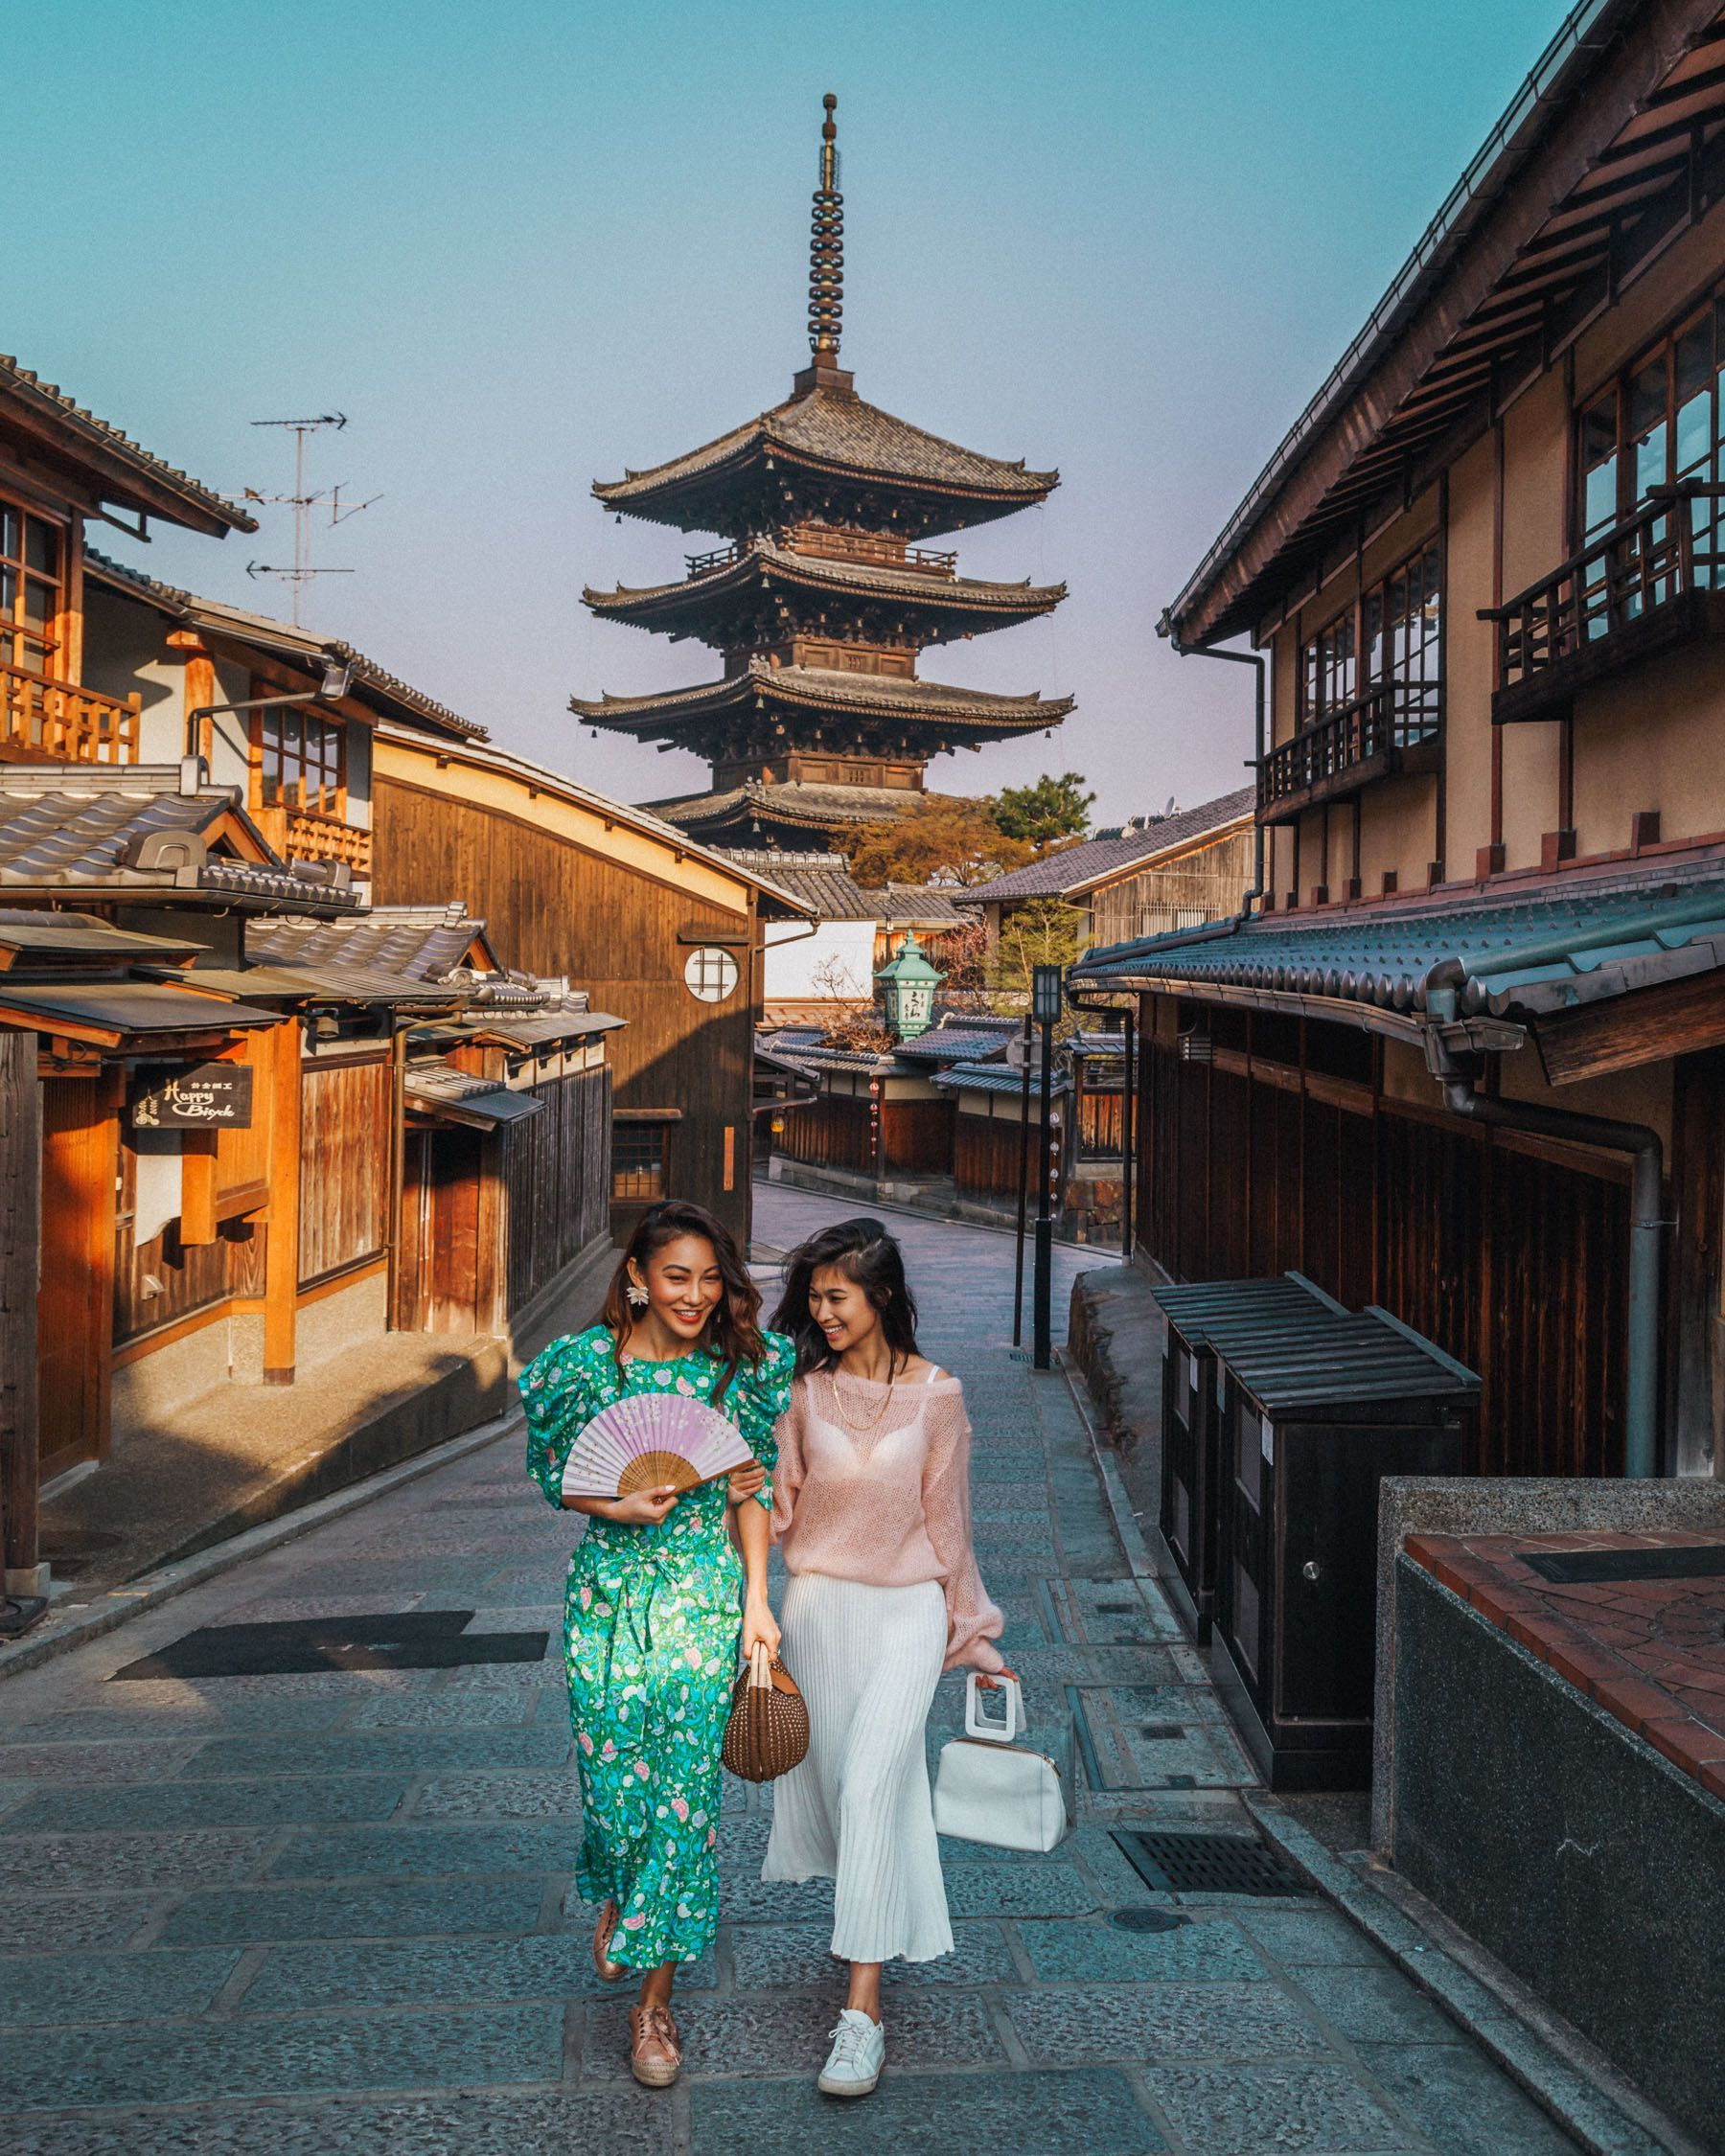 7 Best Spots for Cherry Blossoms in Japan - Kyoto - Path to Yasaka-No-To Pagoda, luxury travel blogg...